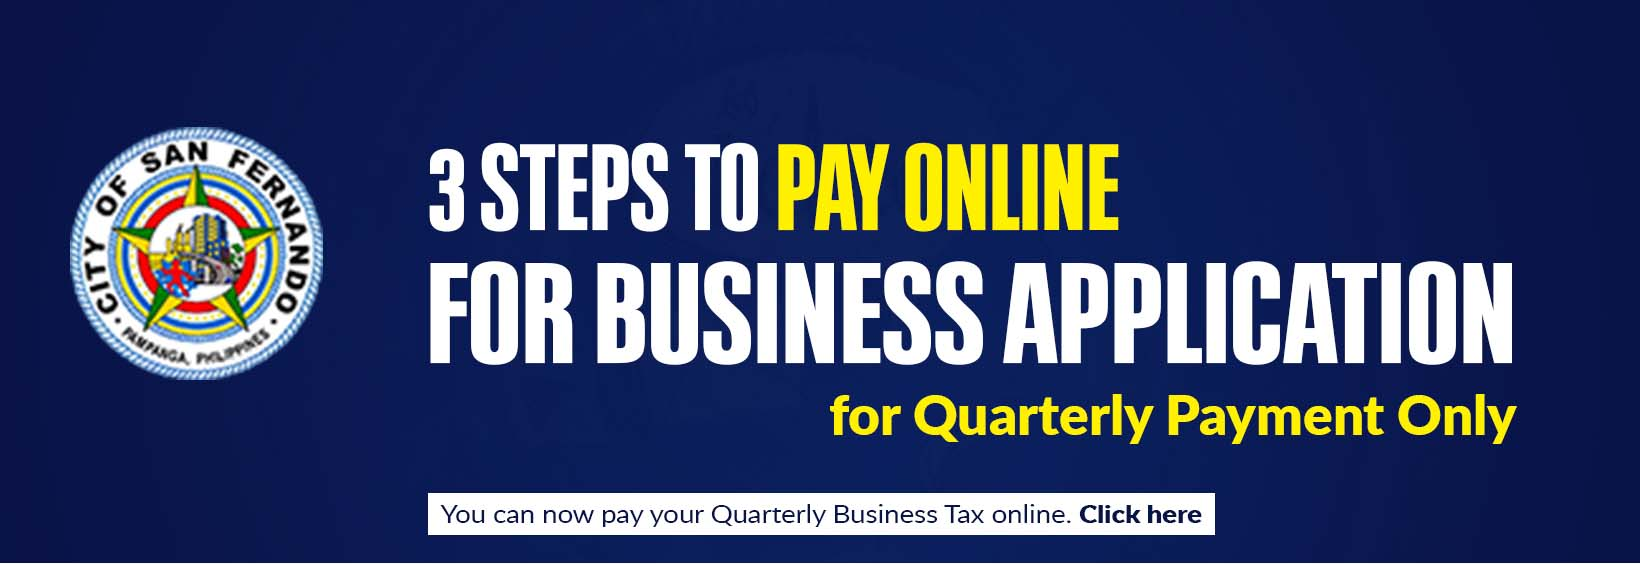 Online Payment for Business Application